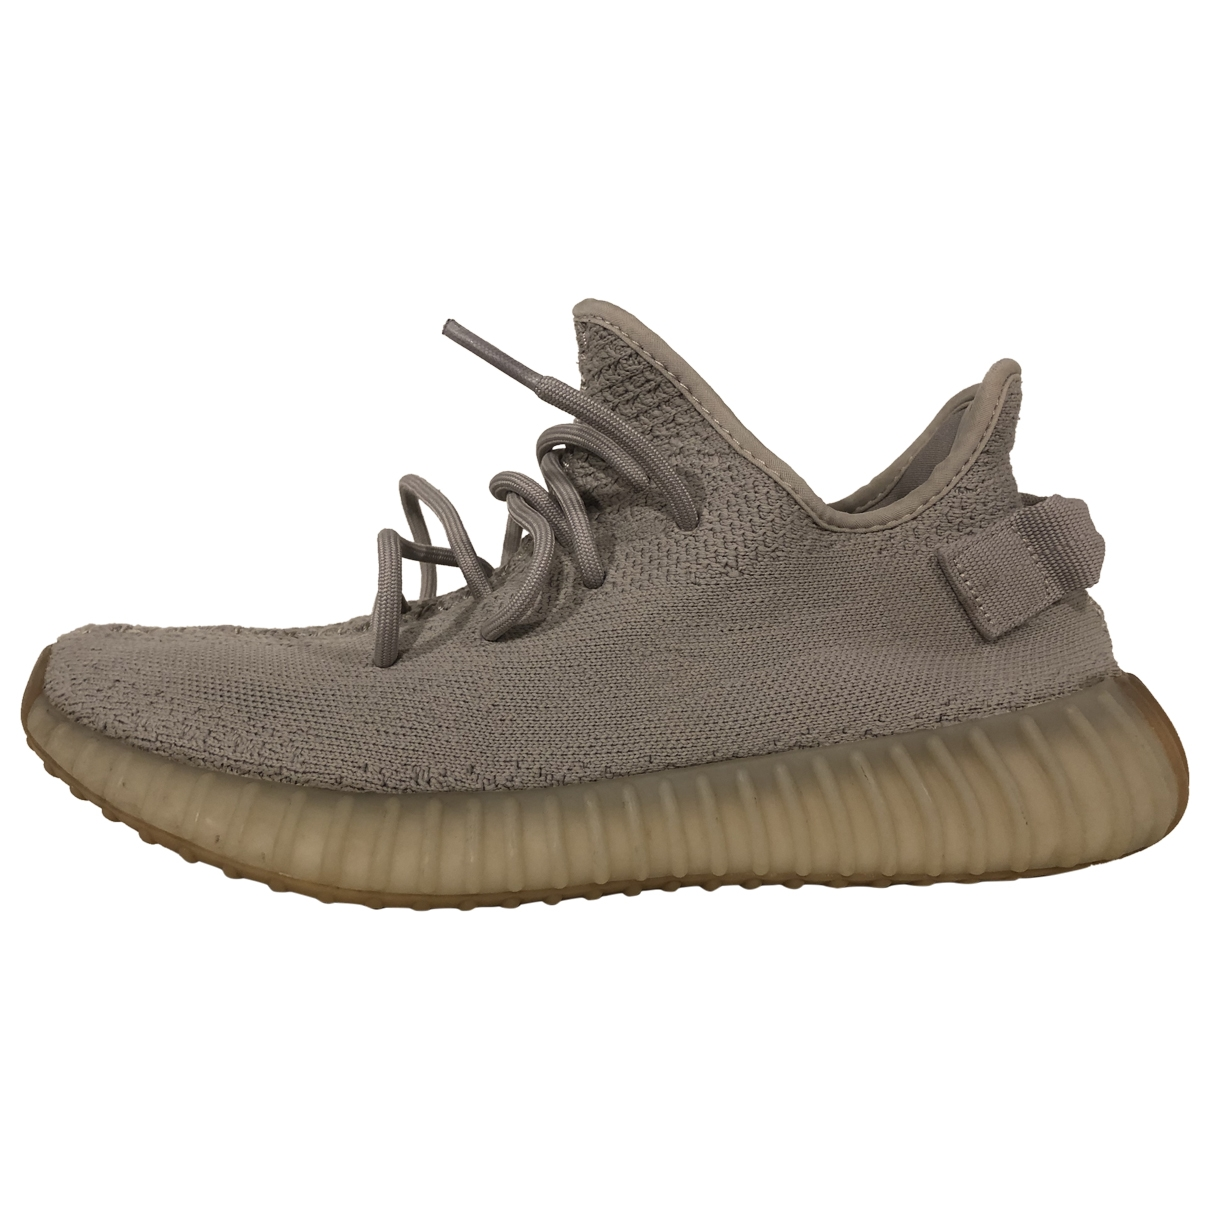 Yeezy X Adidas Boost 350 V2 Sneakers in  Beige Polyester